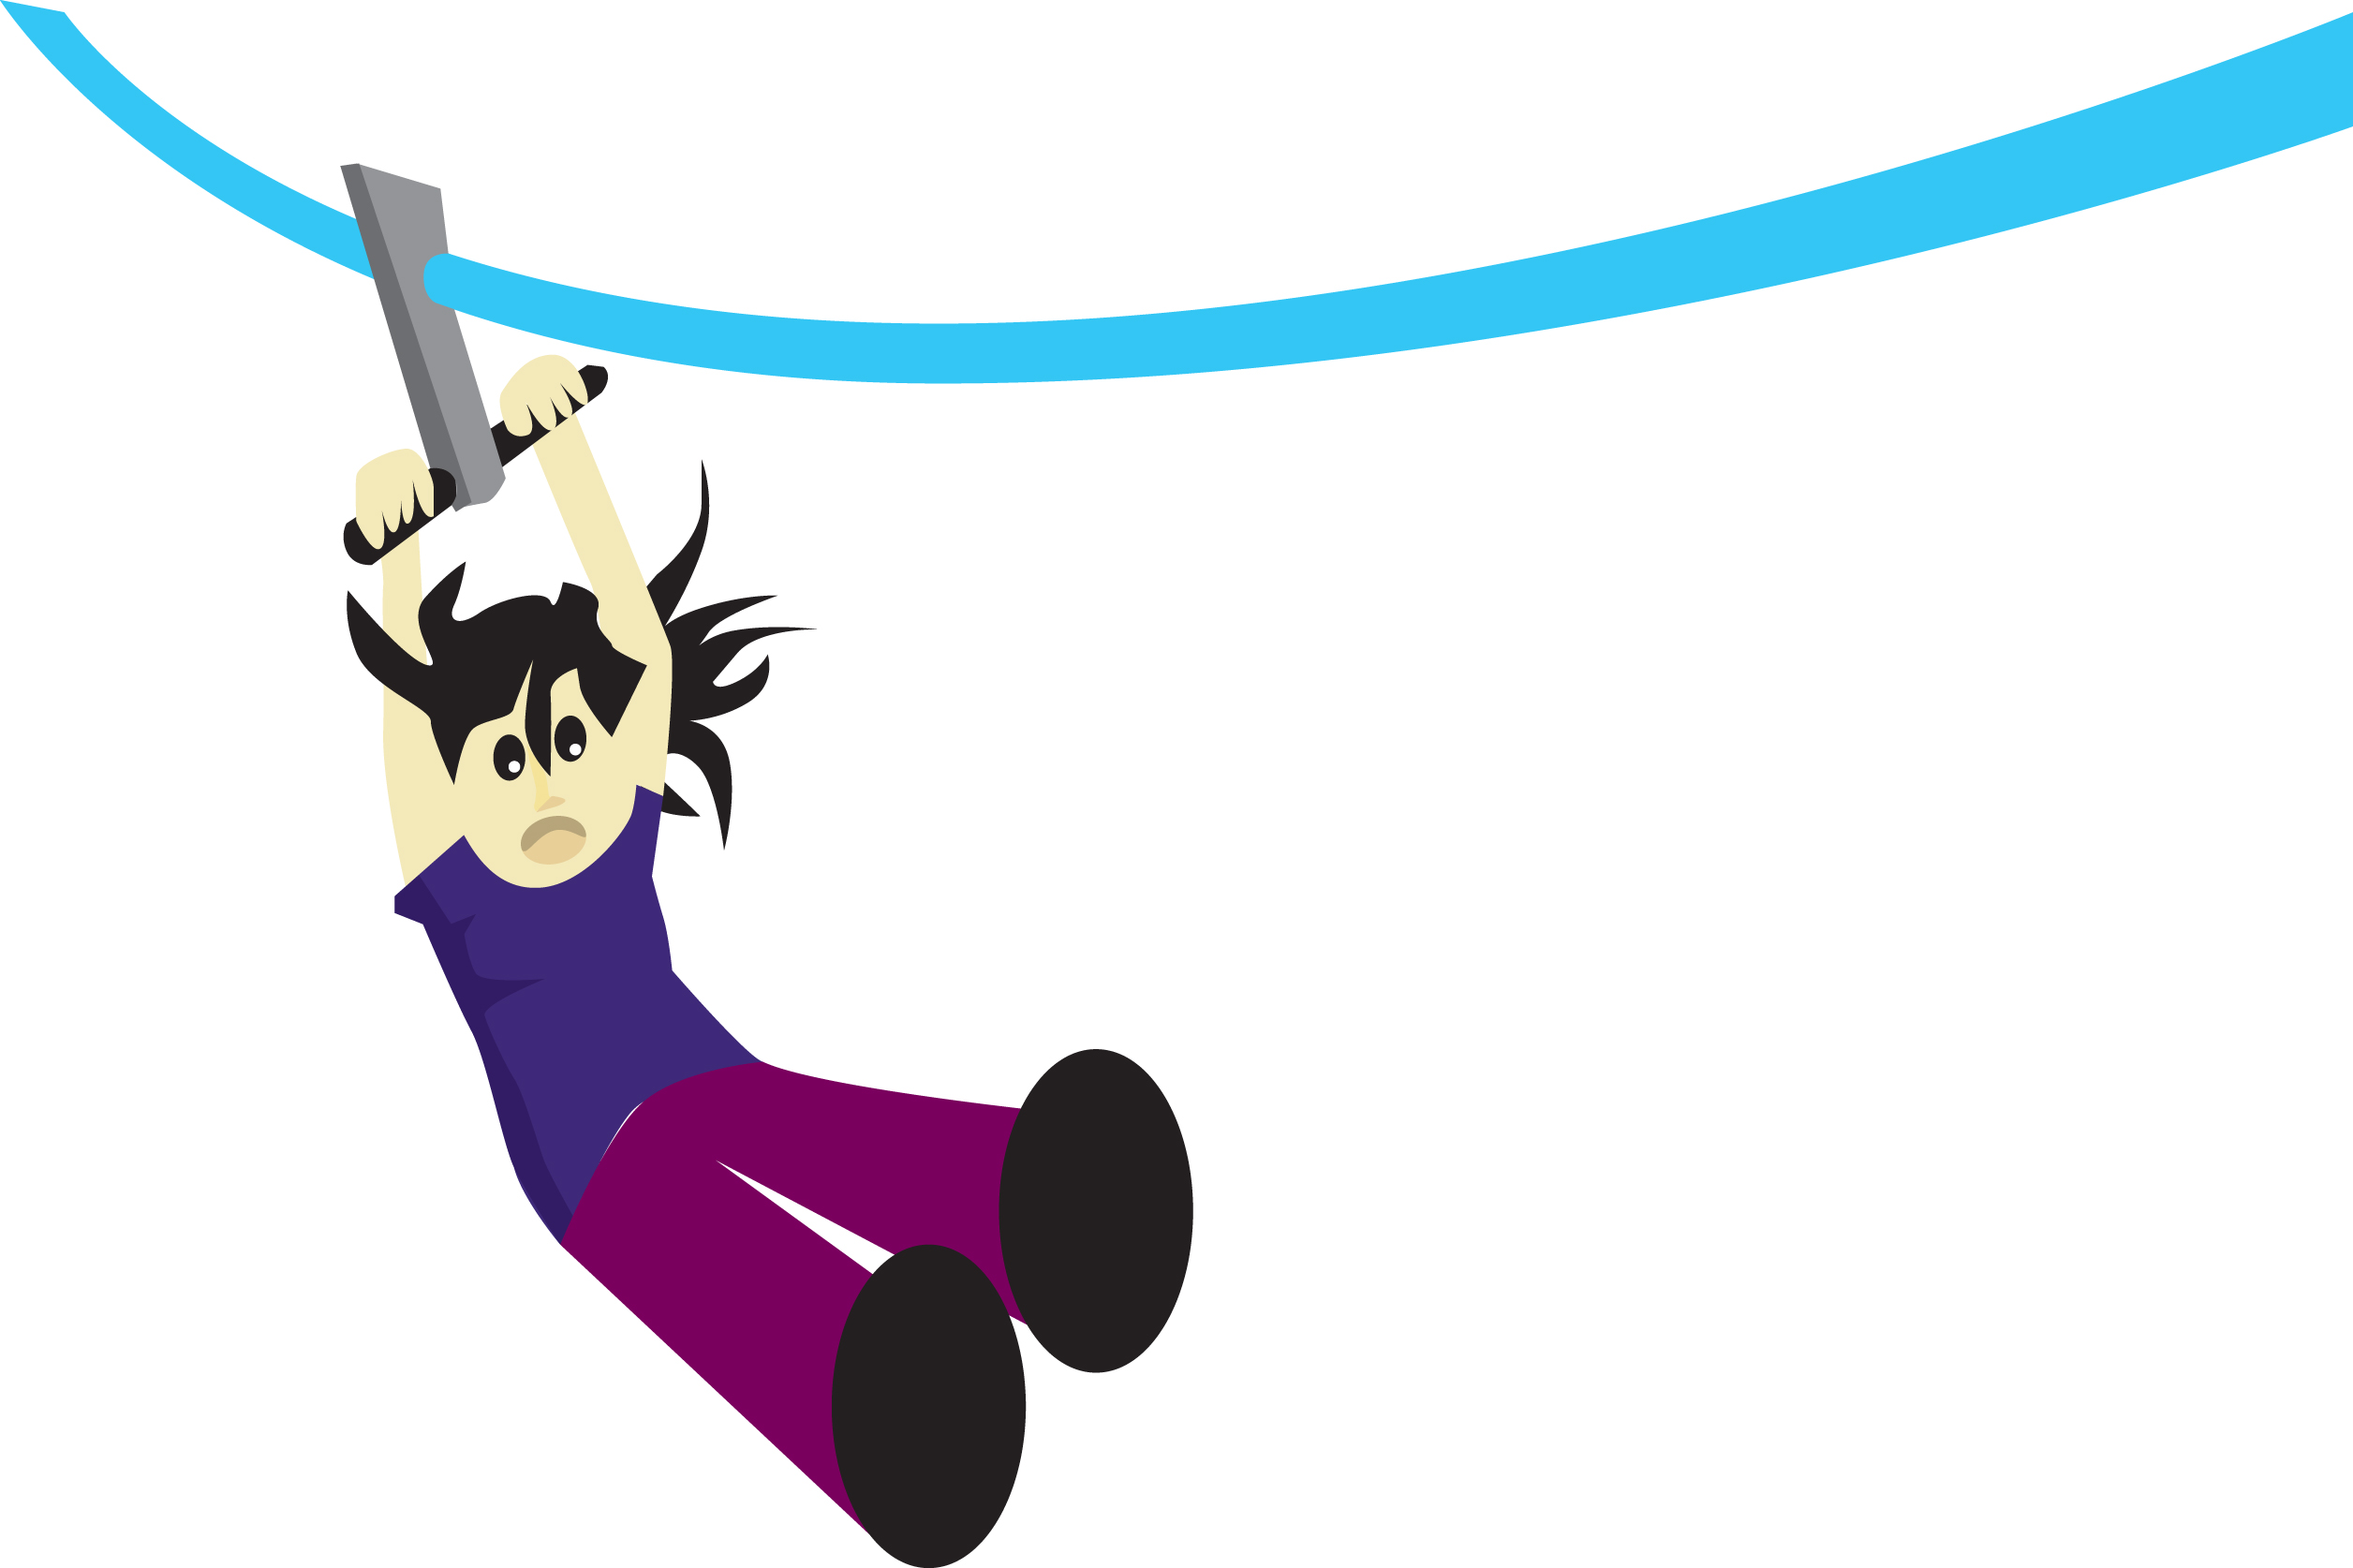 Zip Line Clipart : Zip line cartoon